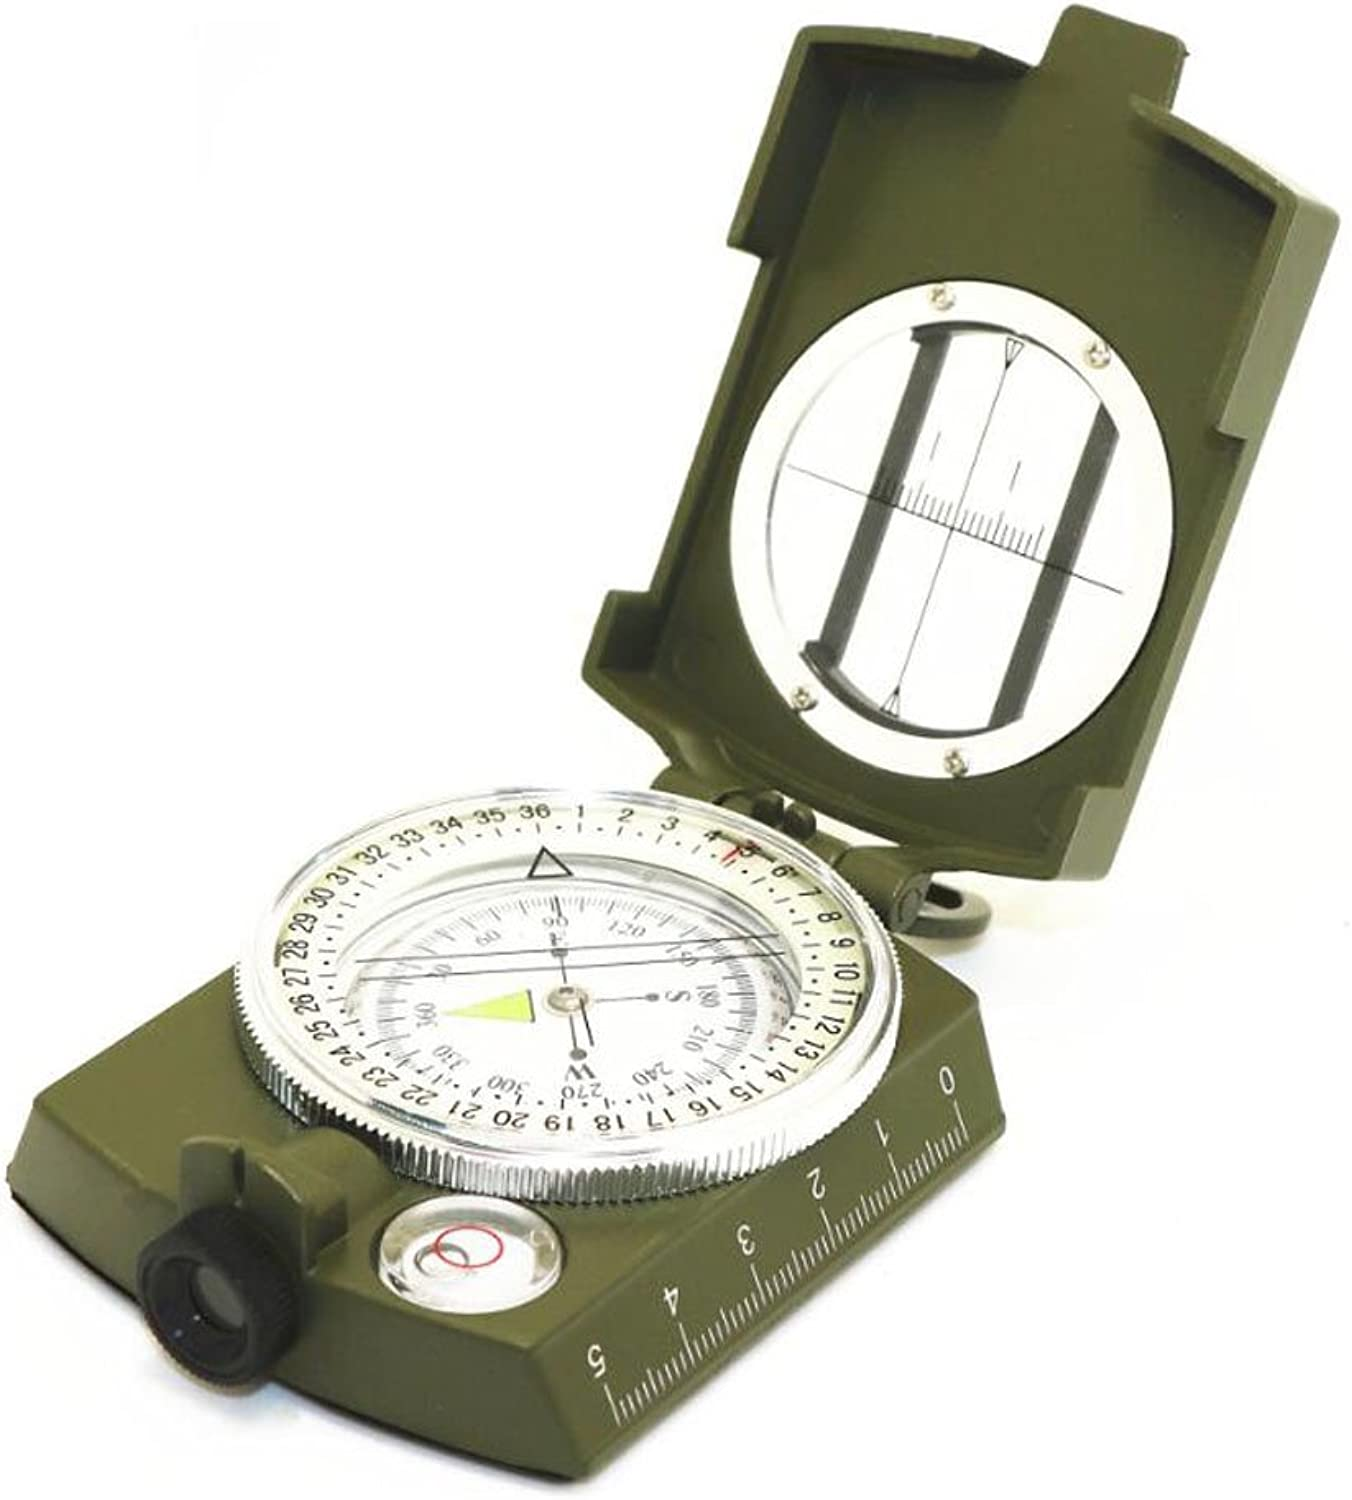 d9d721cf Compass Military Navigation Waterproof and Shakeproof Perfect for ...